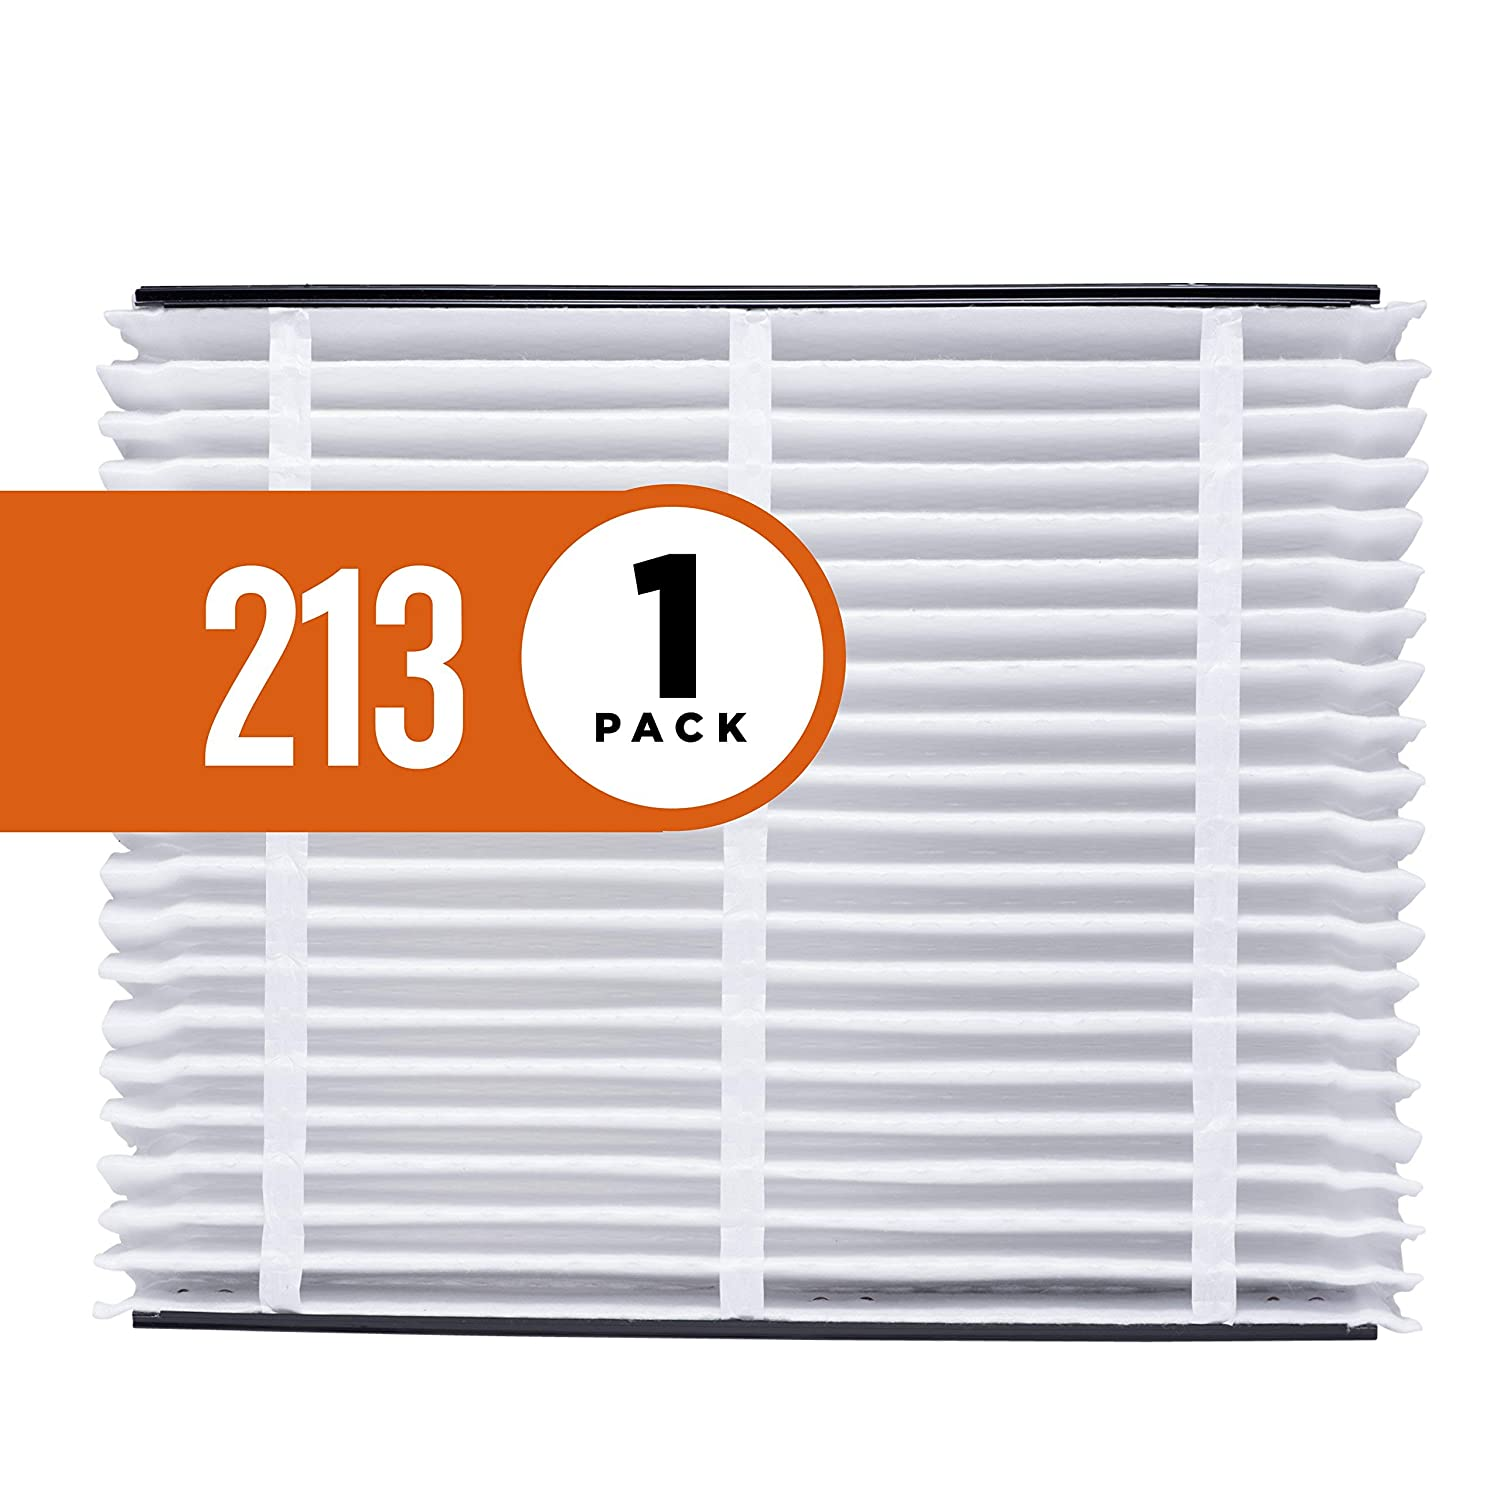 Aprilaire 213 Air Filter for Aprilaire Whole Home Air Purifiers, MERV 13 (Pack of 1) (Renewed)